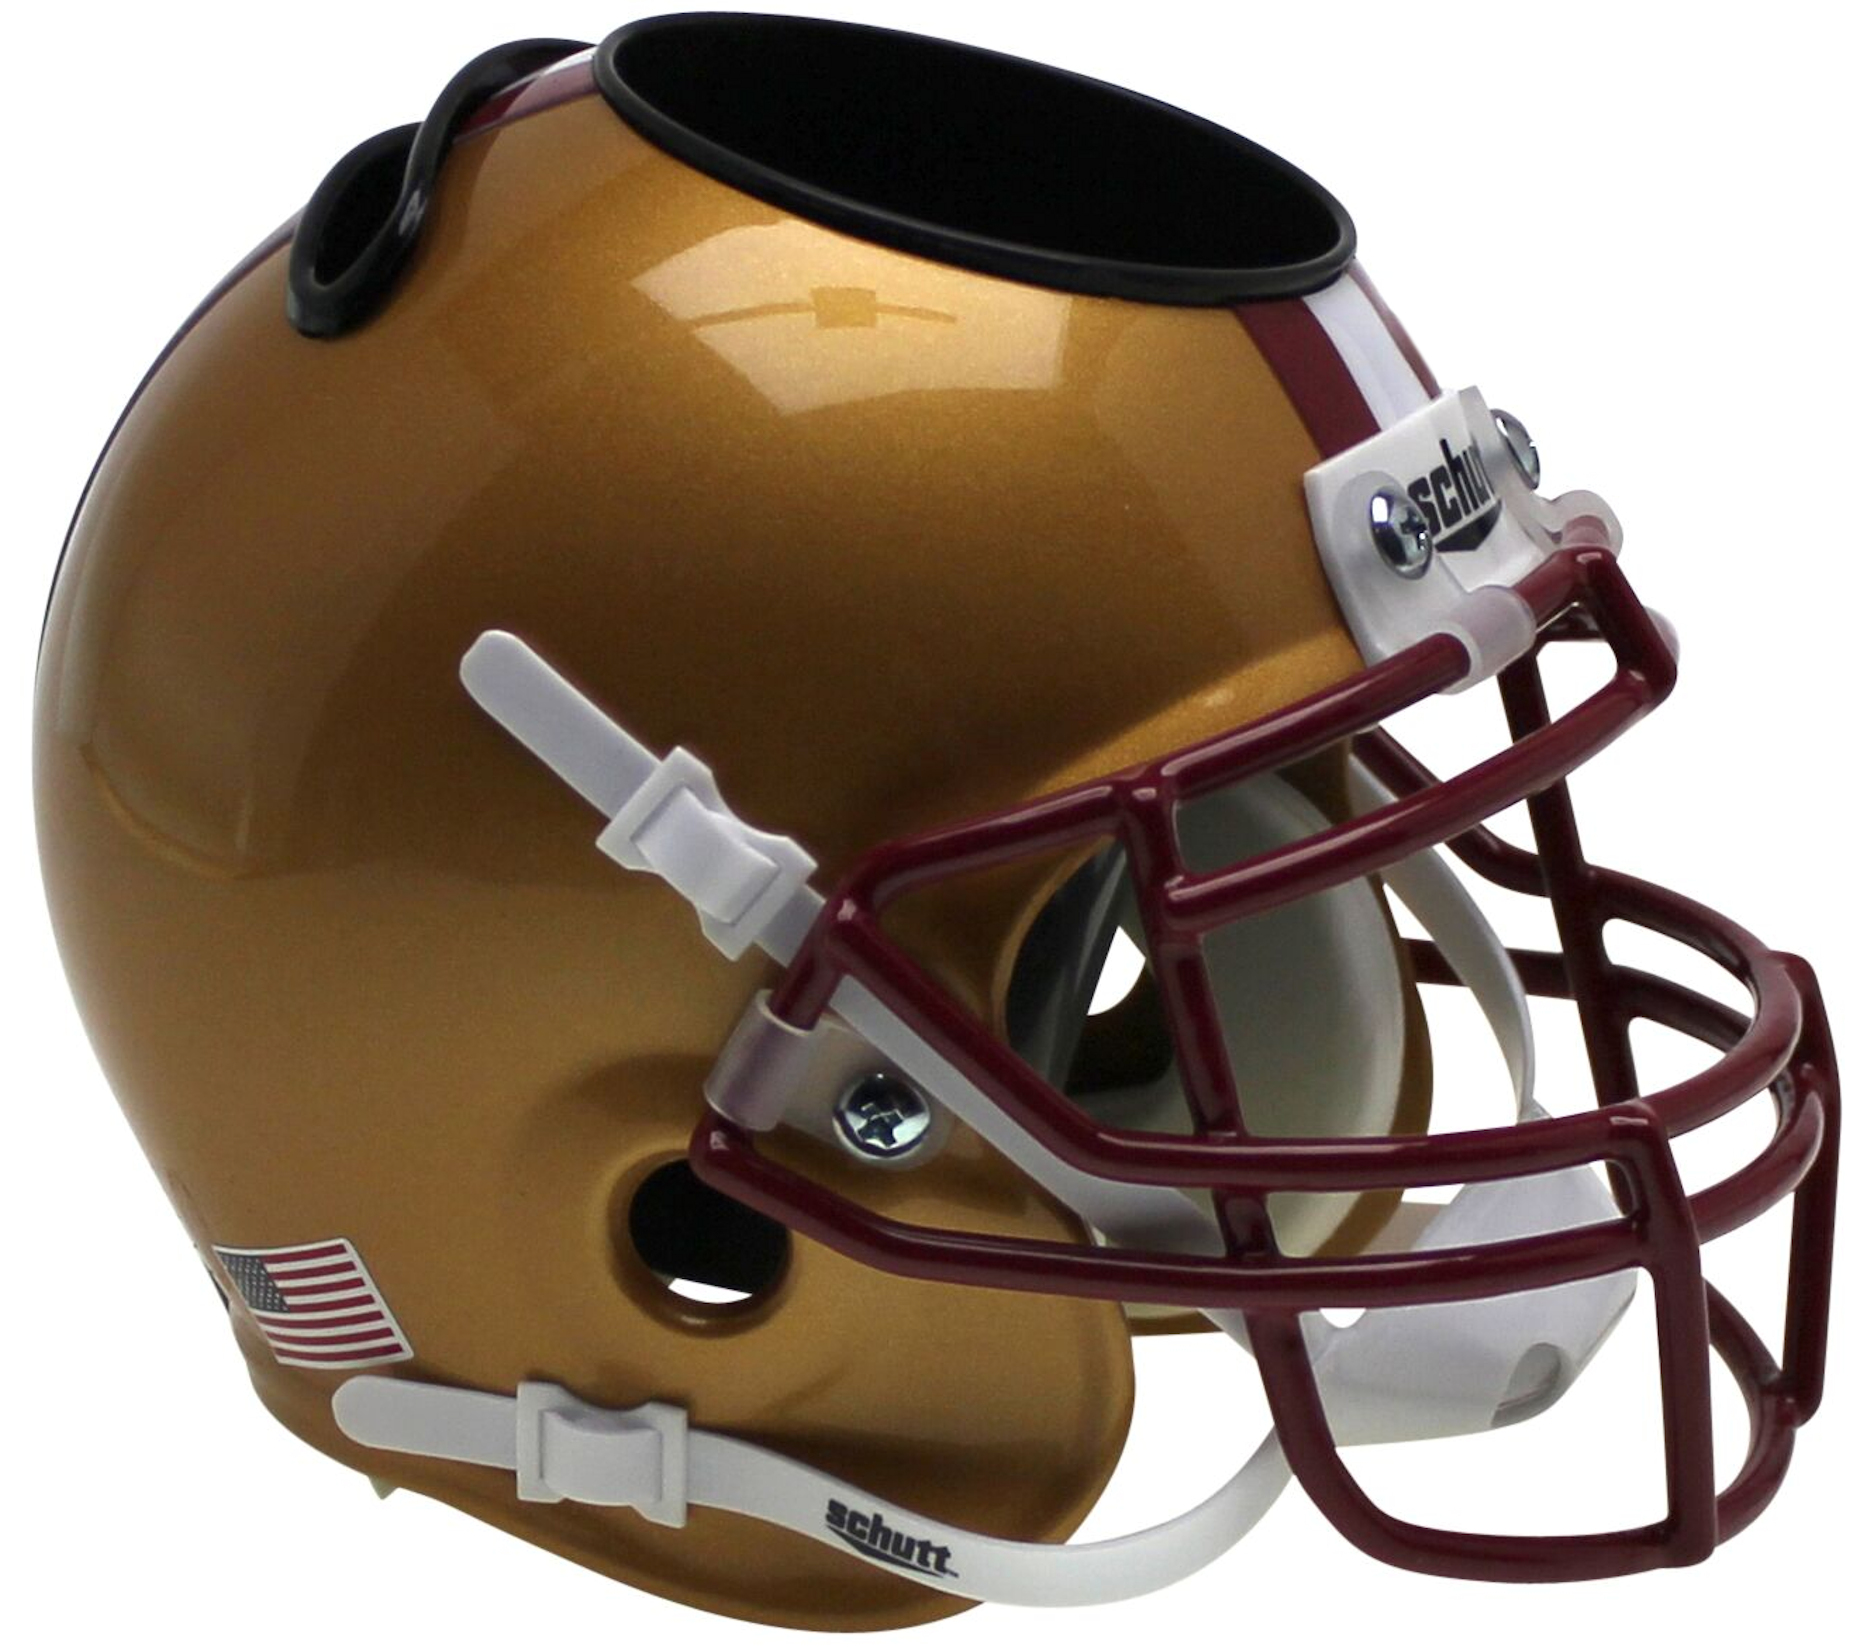 Boston College Eagles Miniature Football Helmet Desk Caddy <B>Stained Glass</B>